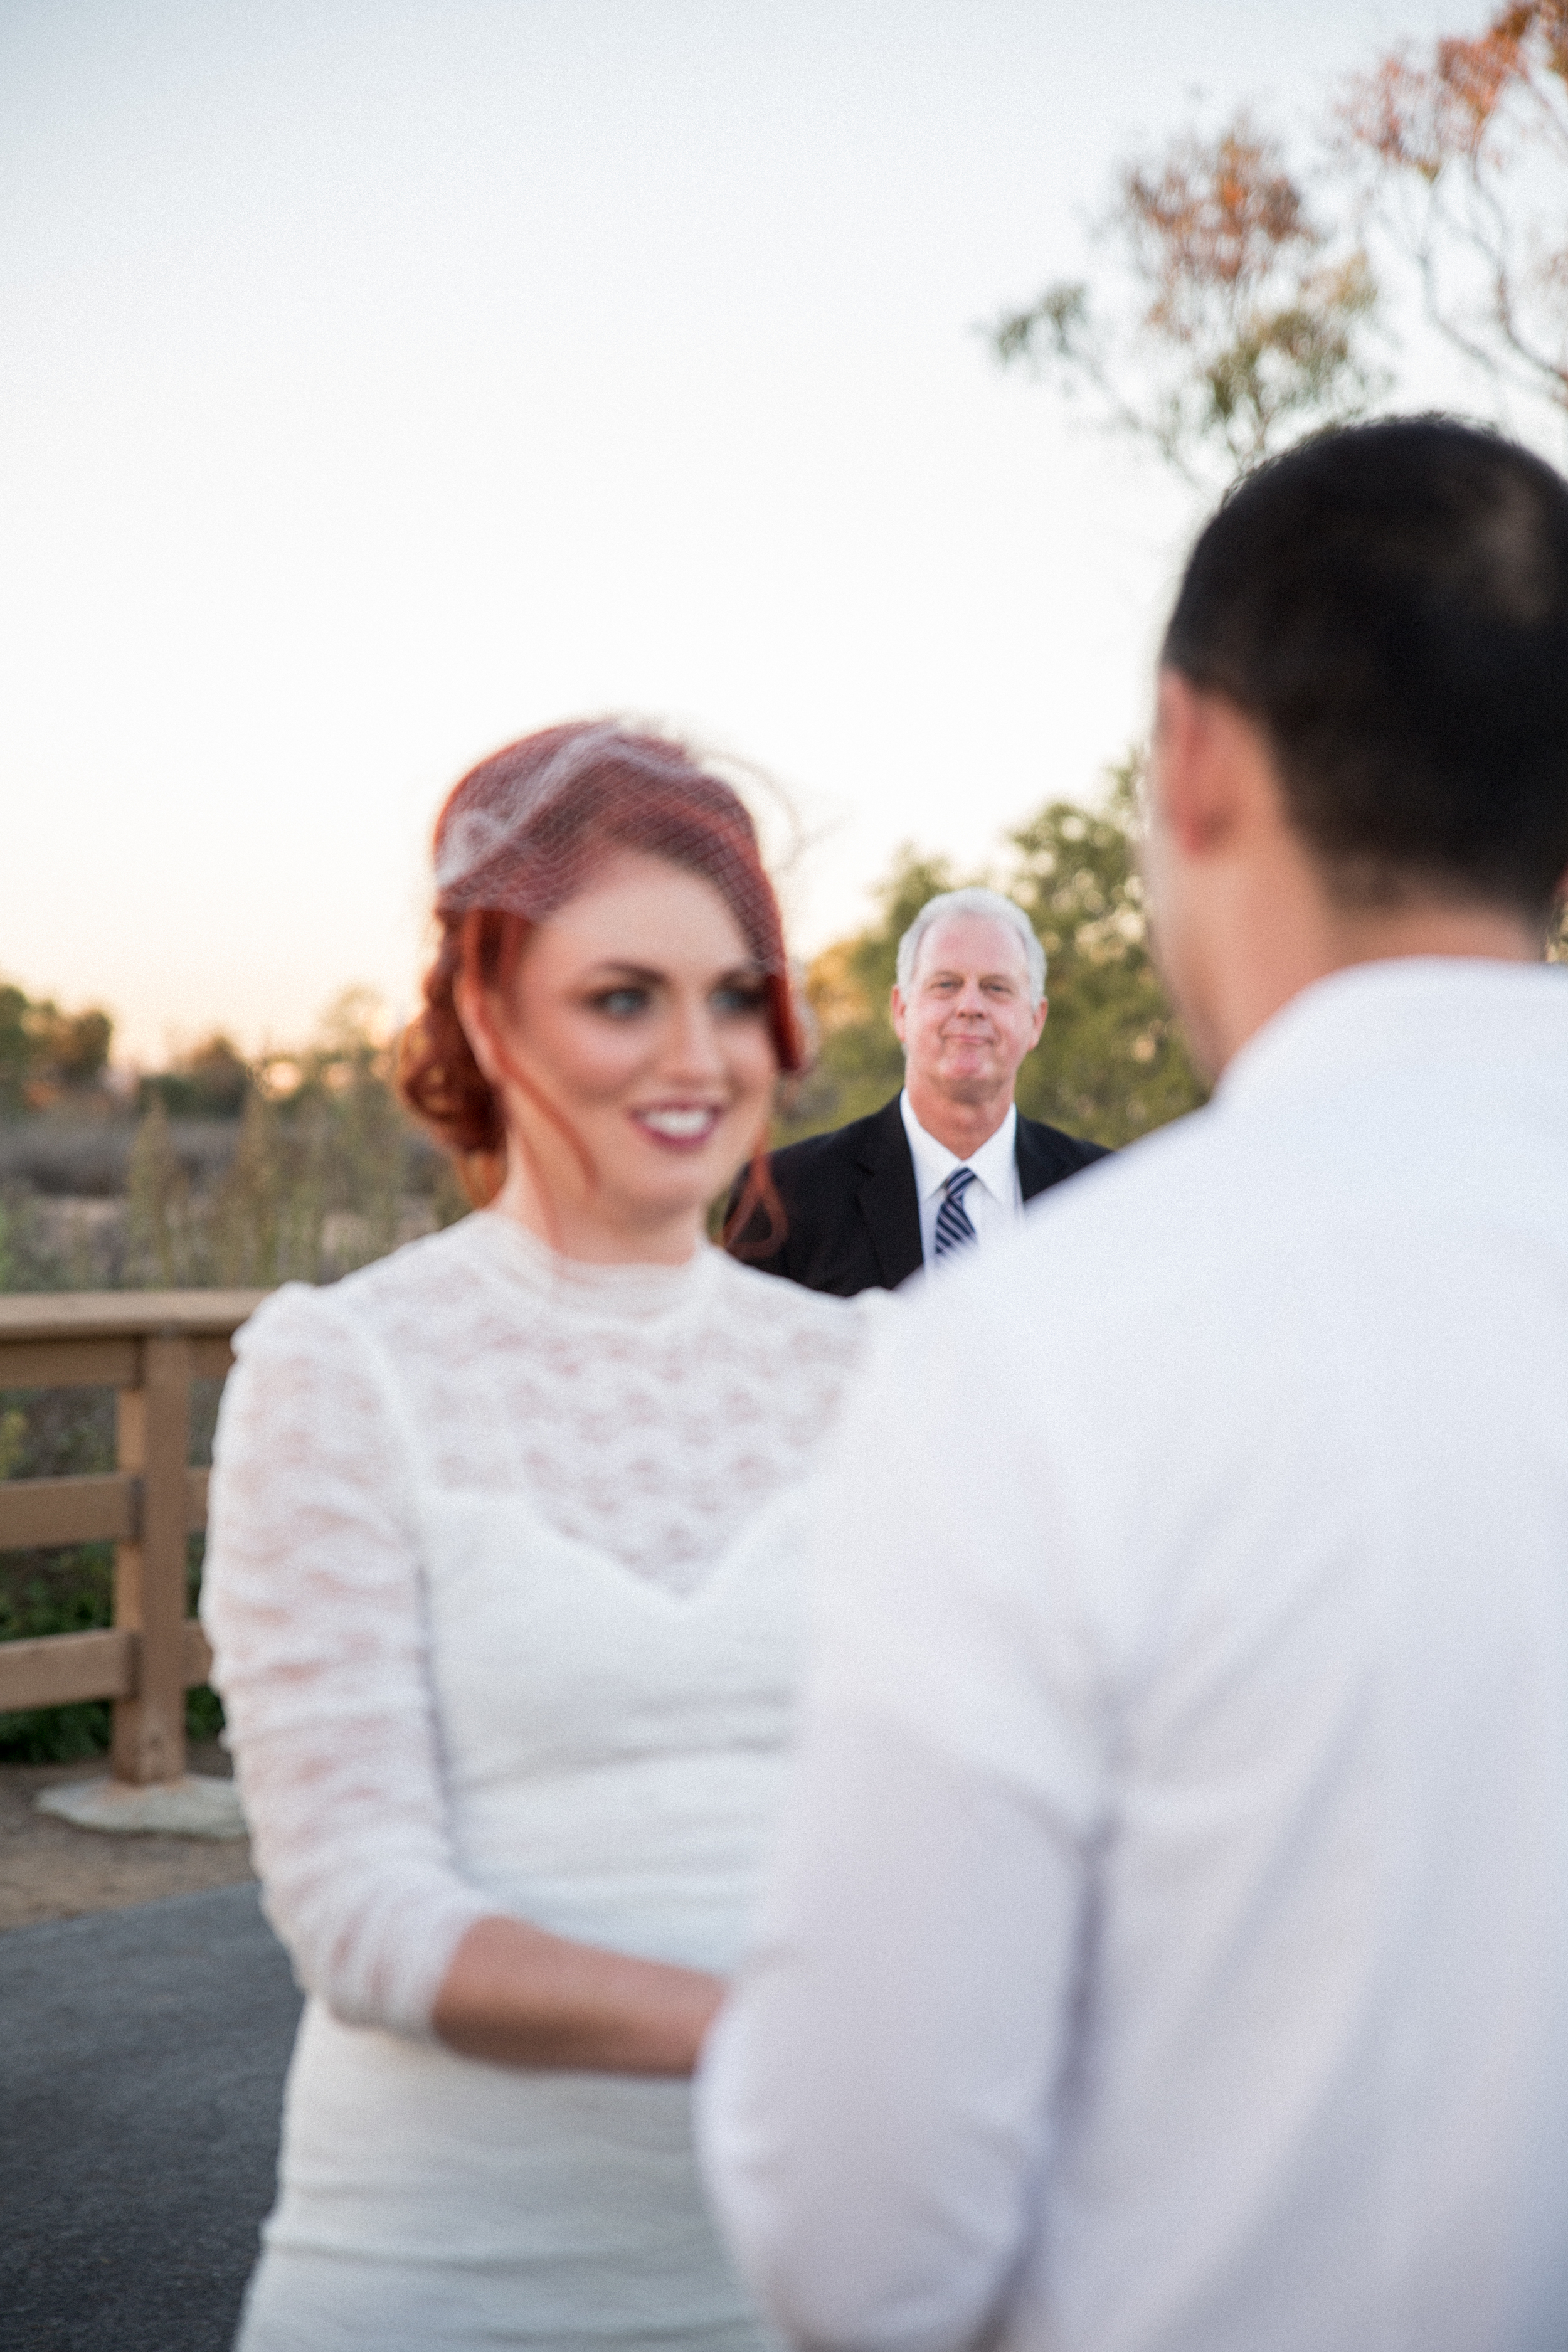 Father watching his daughter get married!